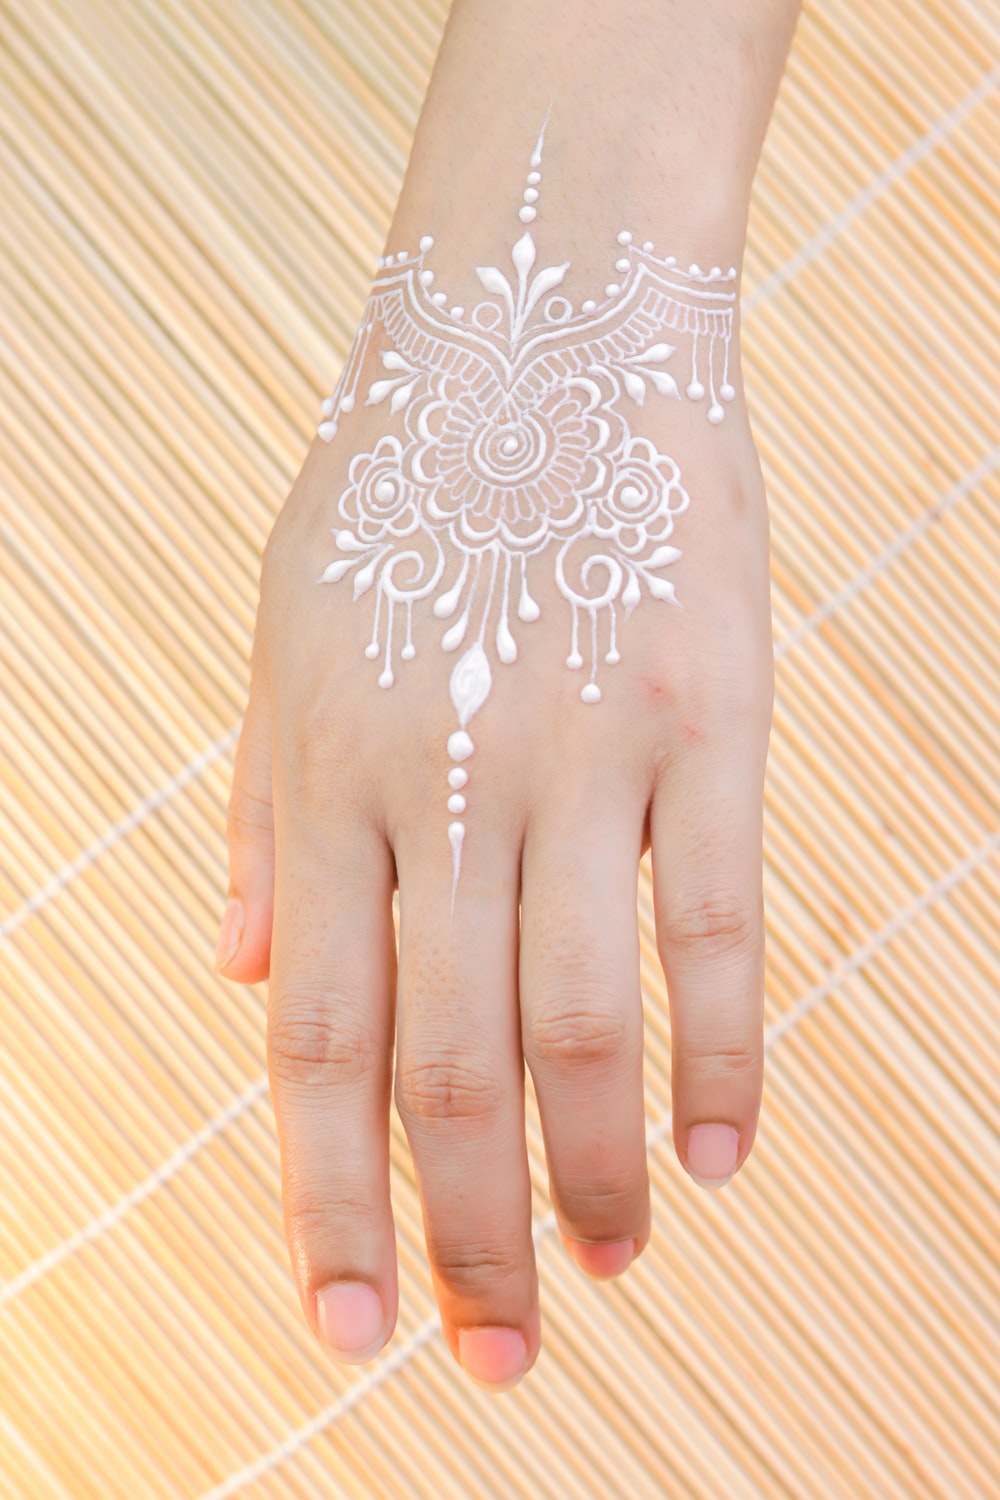 person with white and red floral hand tattoo